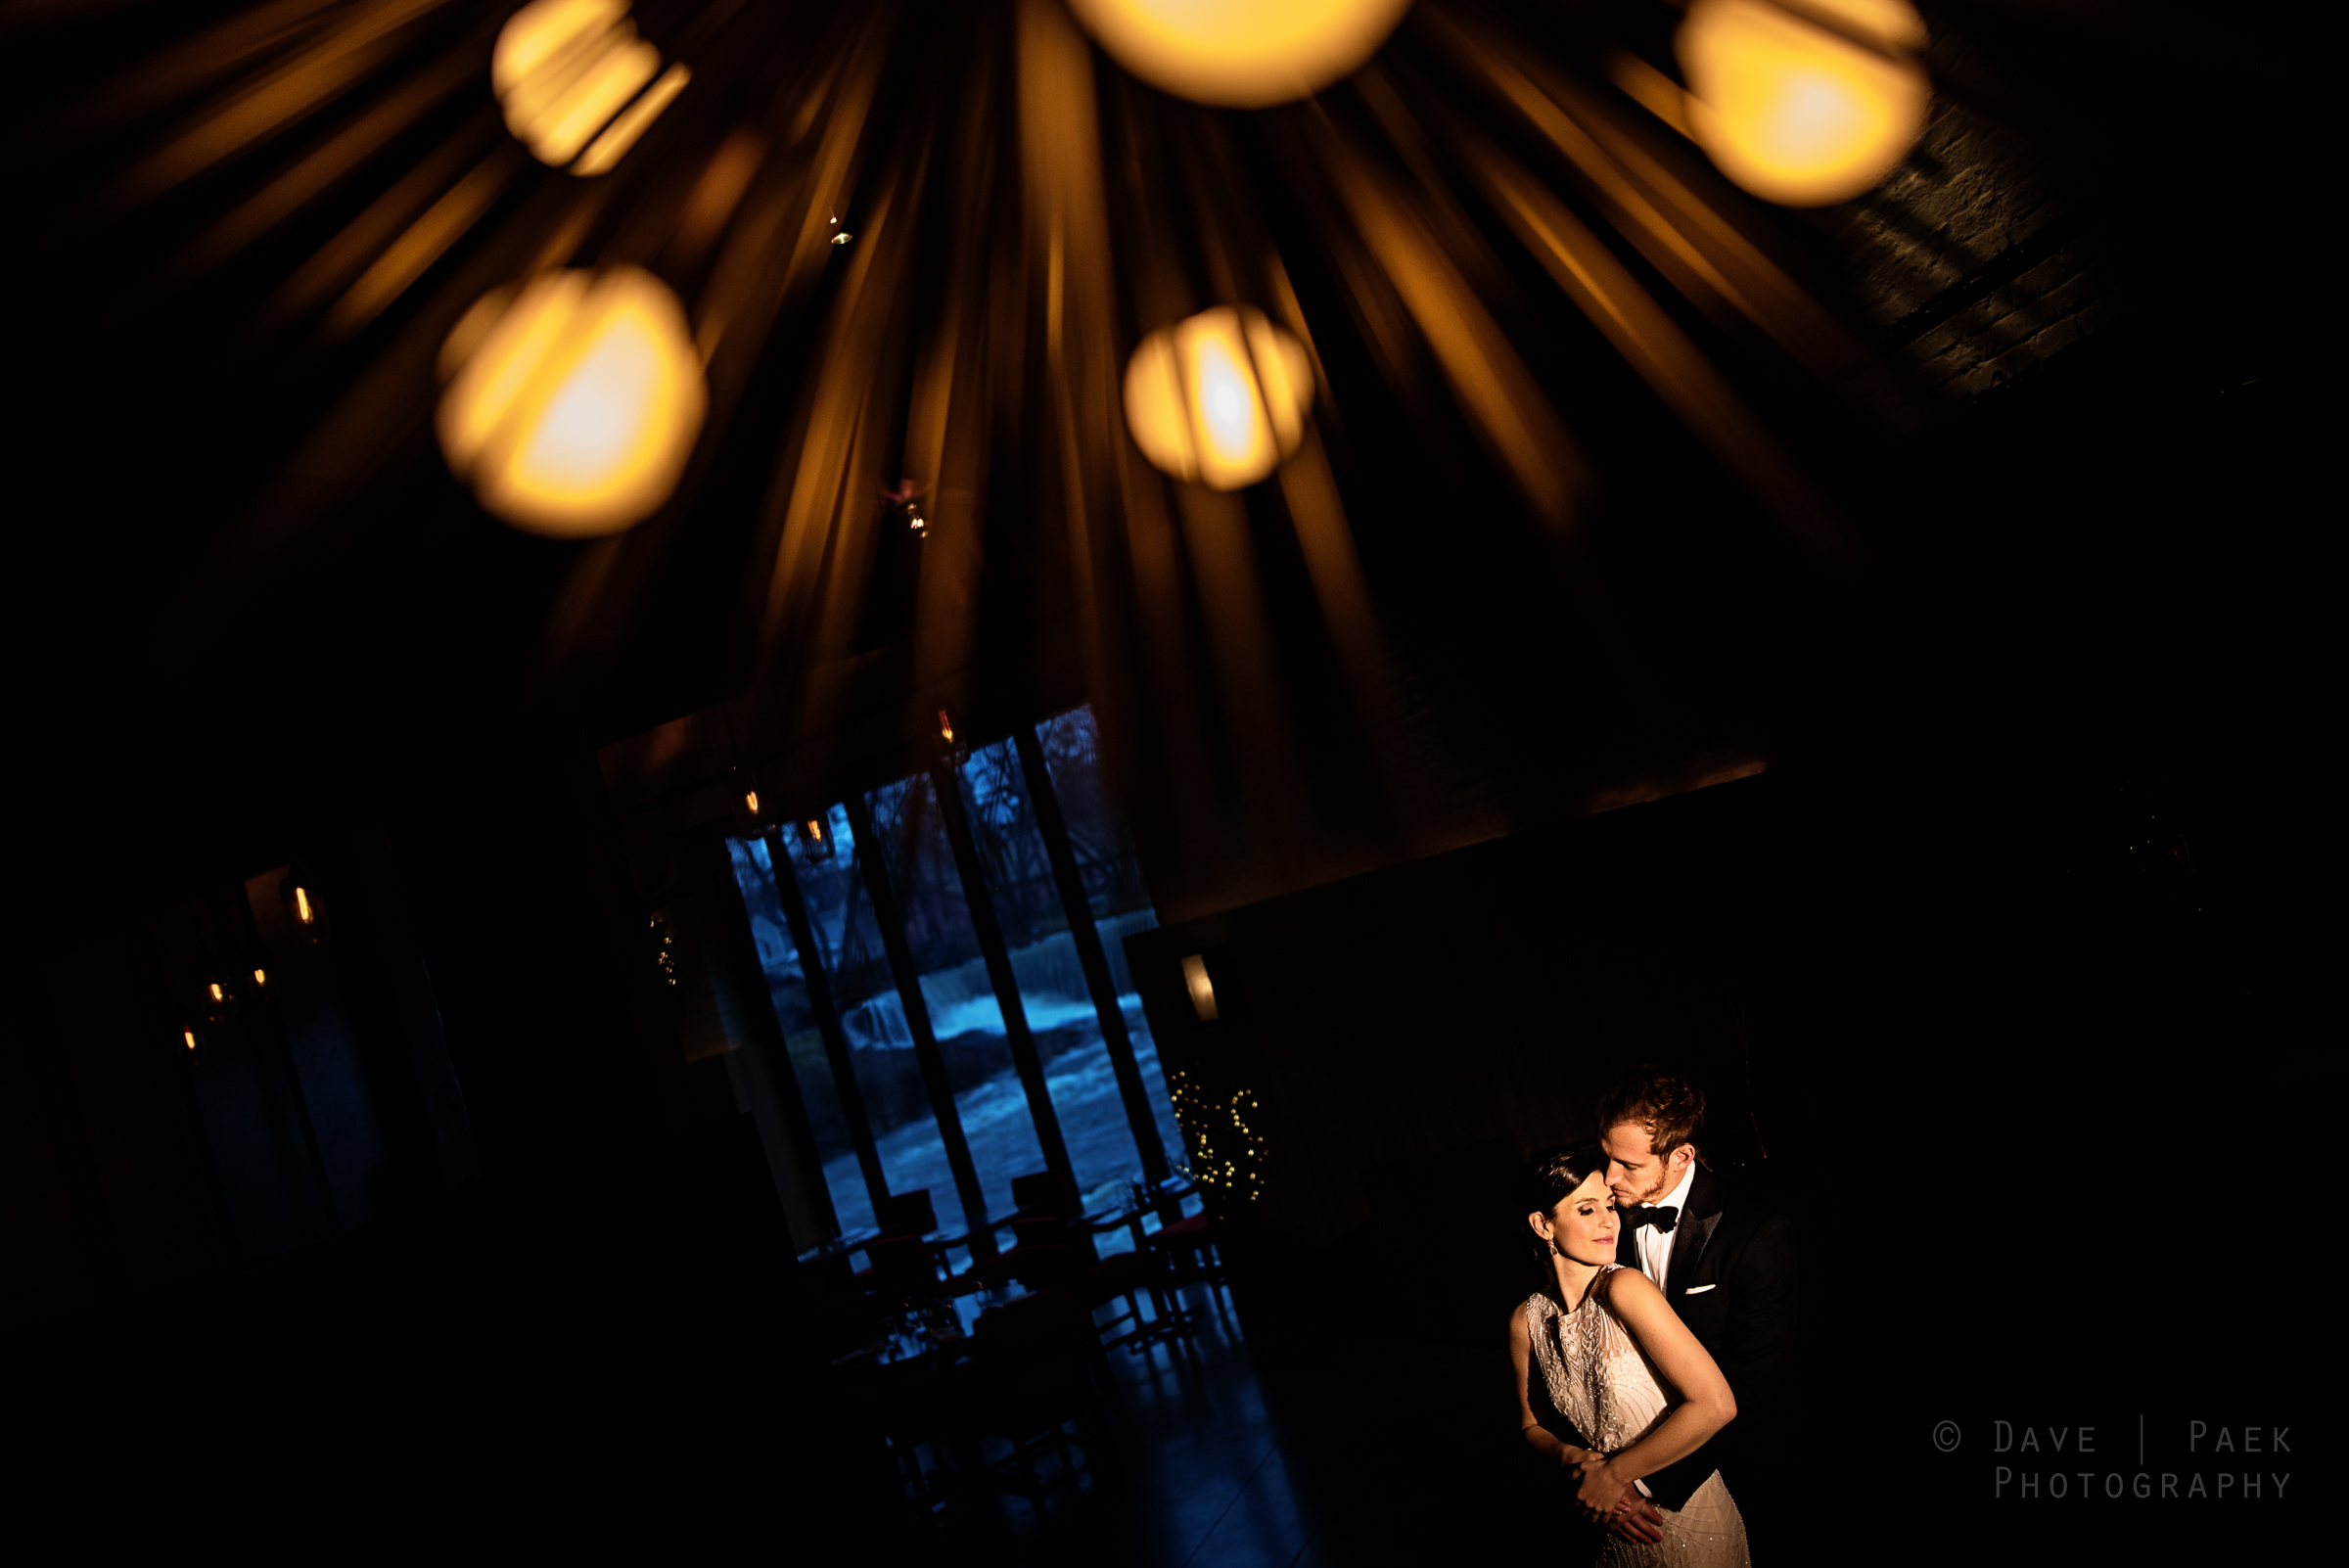 Best 2015 Wedding And Engagement Photography Dave Paek